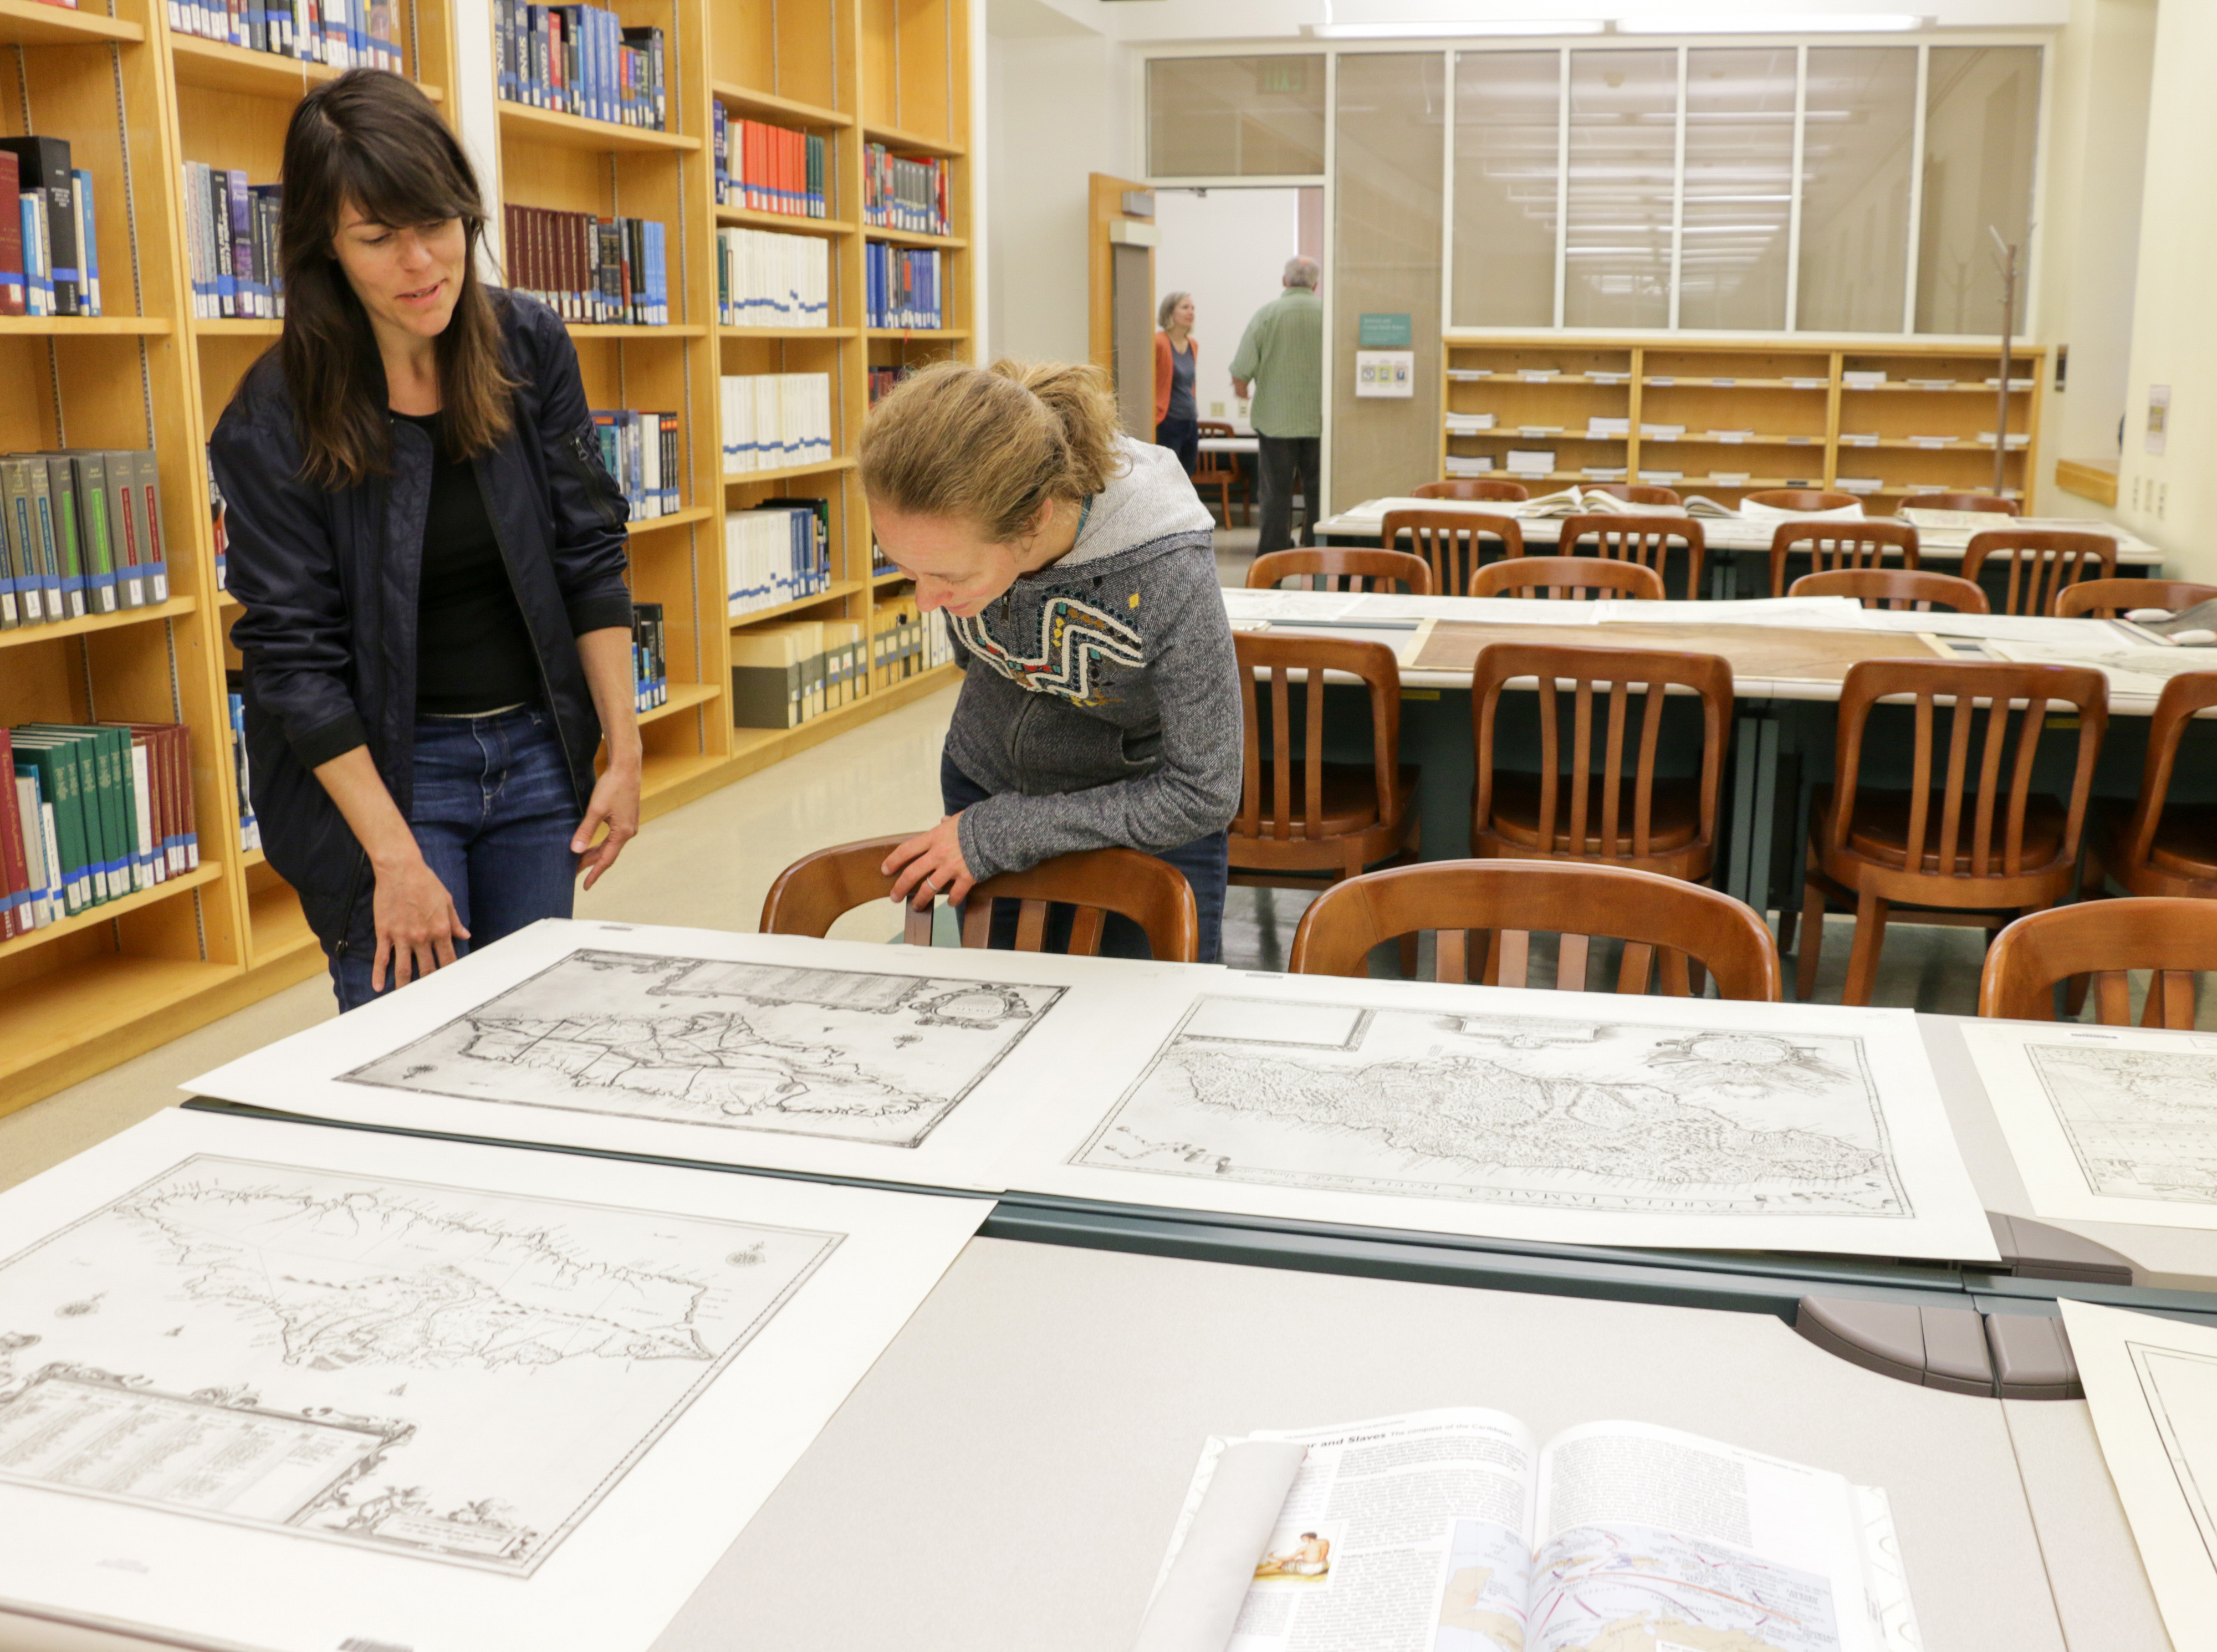 """History graduate students Nicole Viglini, left, and Amy O'Hearn discuss """"Hamilton, in Maps,"""" a pop-up exhibit Viglini helped to curate in the Earth Sciences & Map Library in McCone Hall on Sept. 22, 2017. (Photo by Jami Smith for the University Library)"""